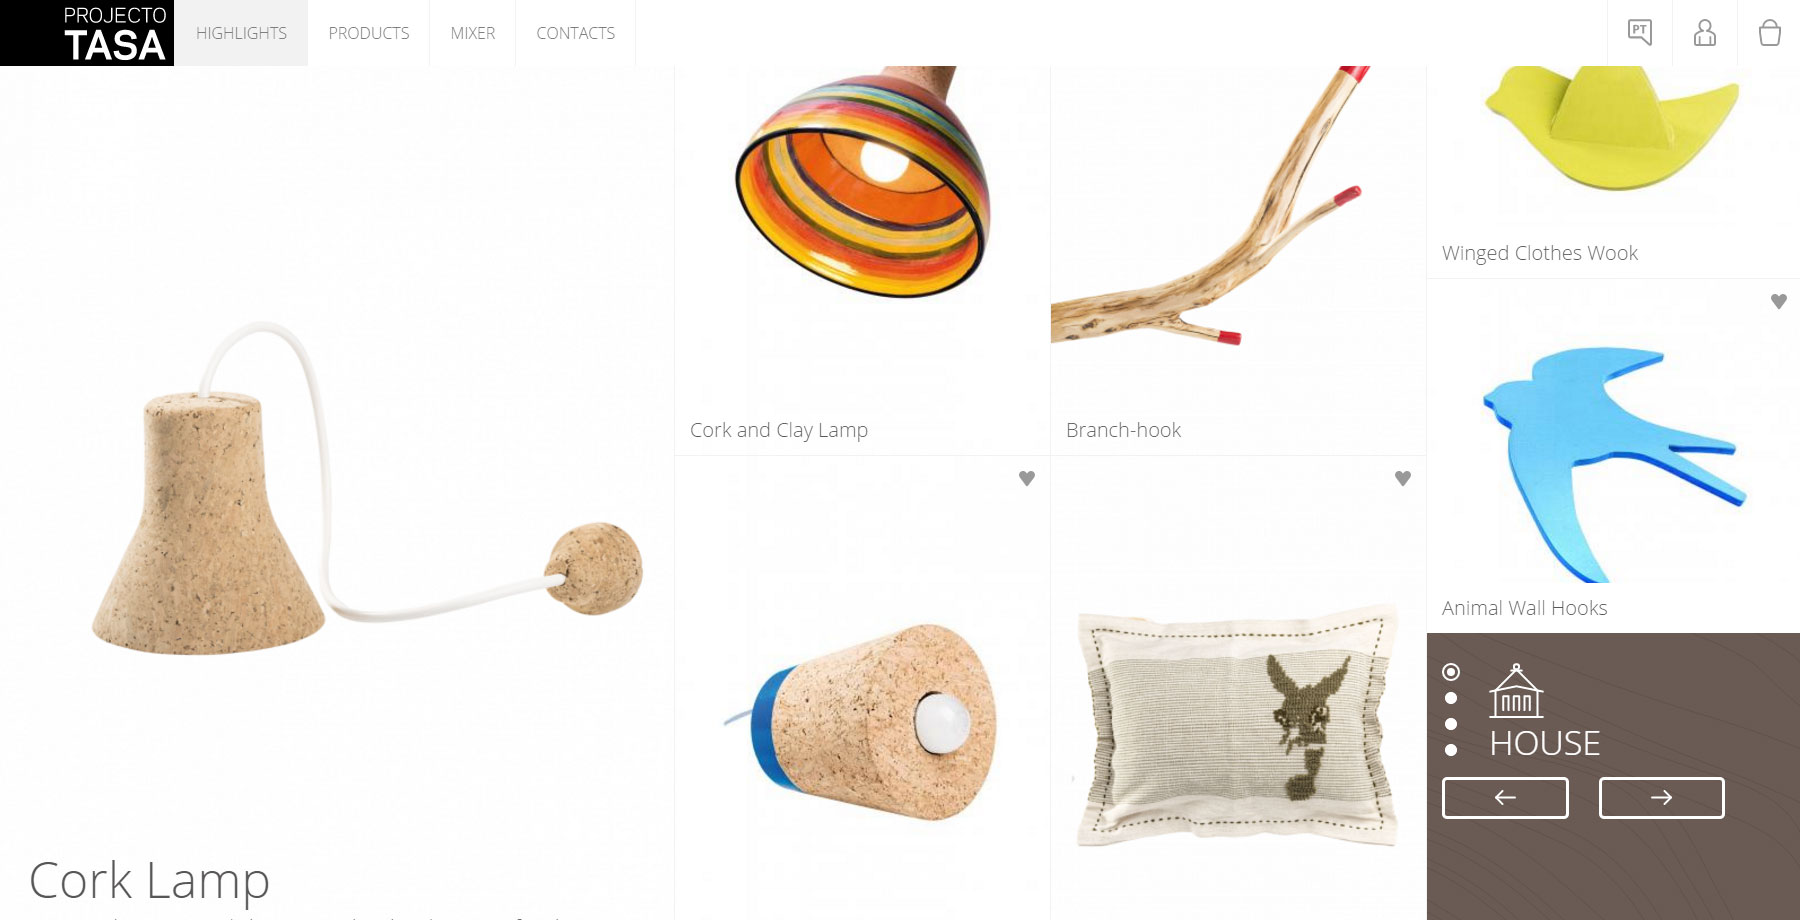 Projecto Tasa Shop - Website of the Day